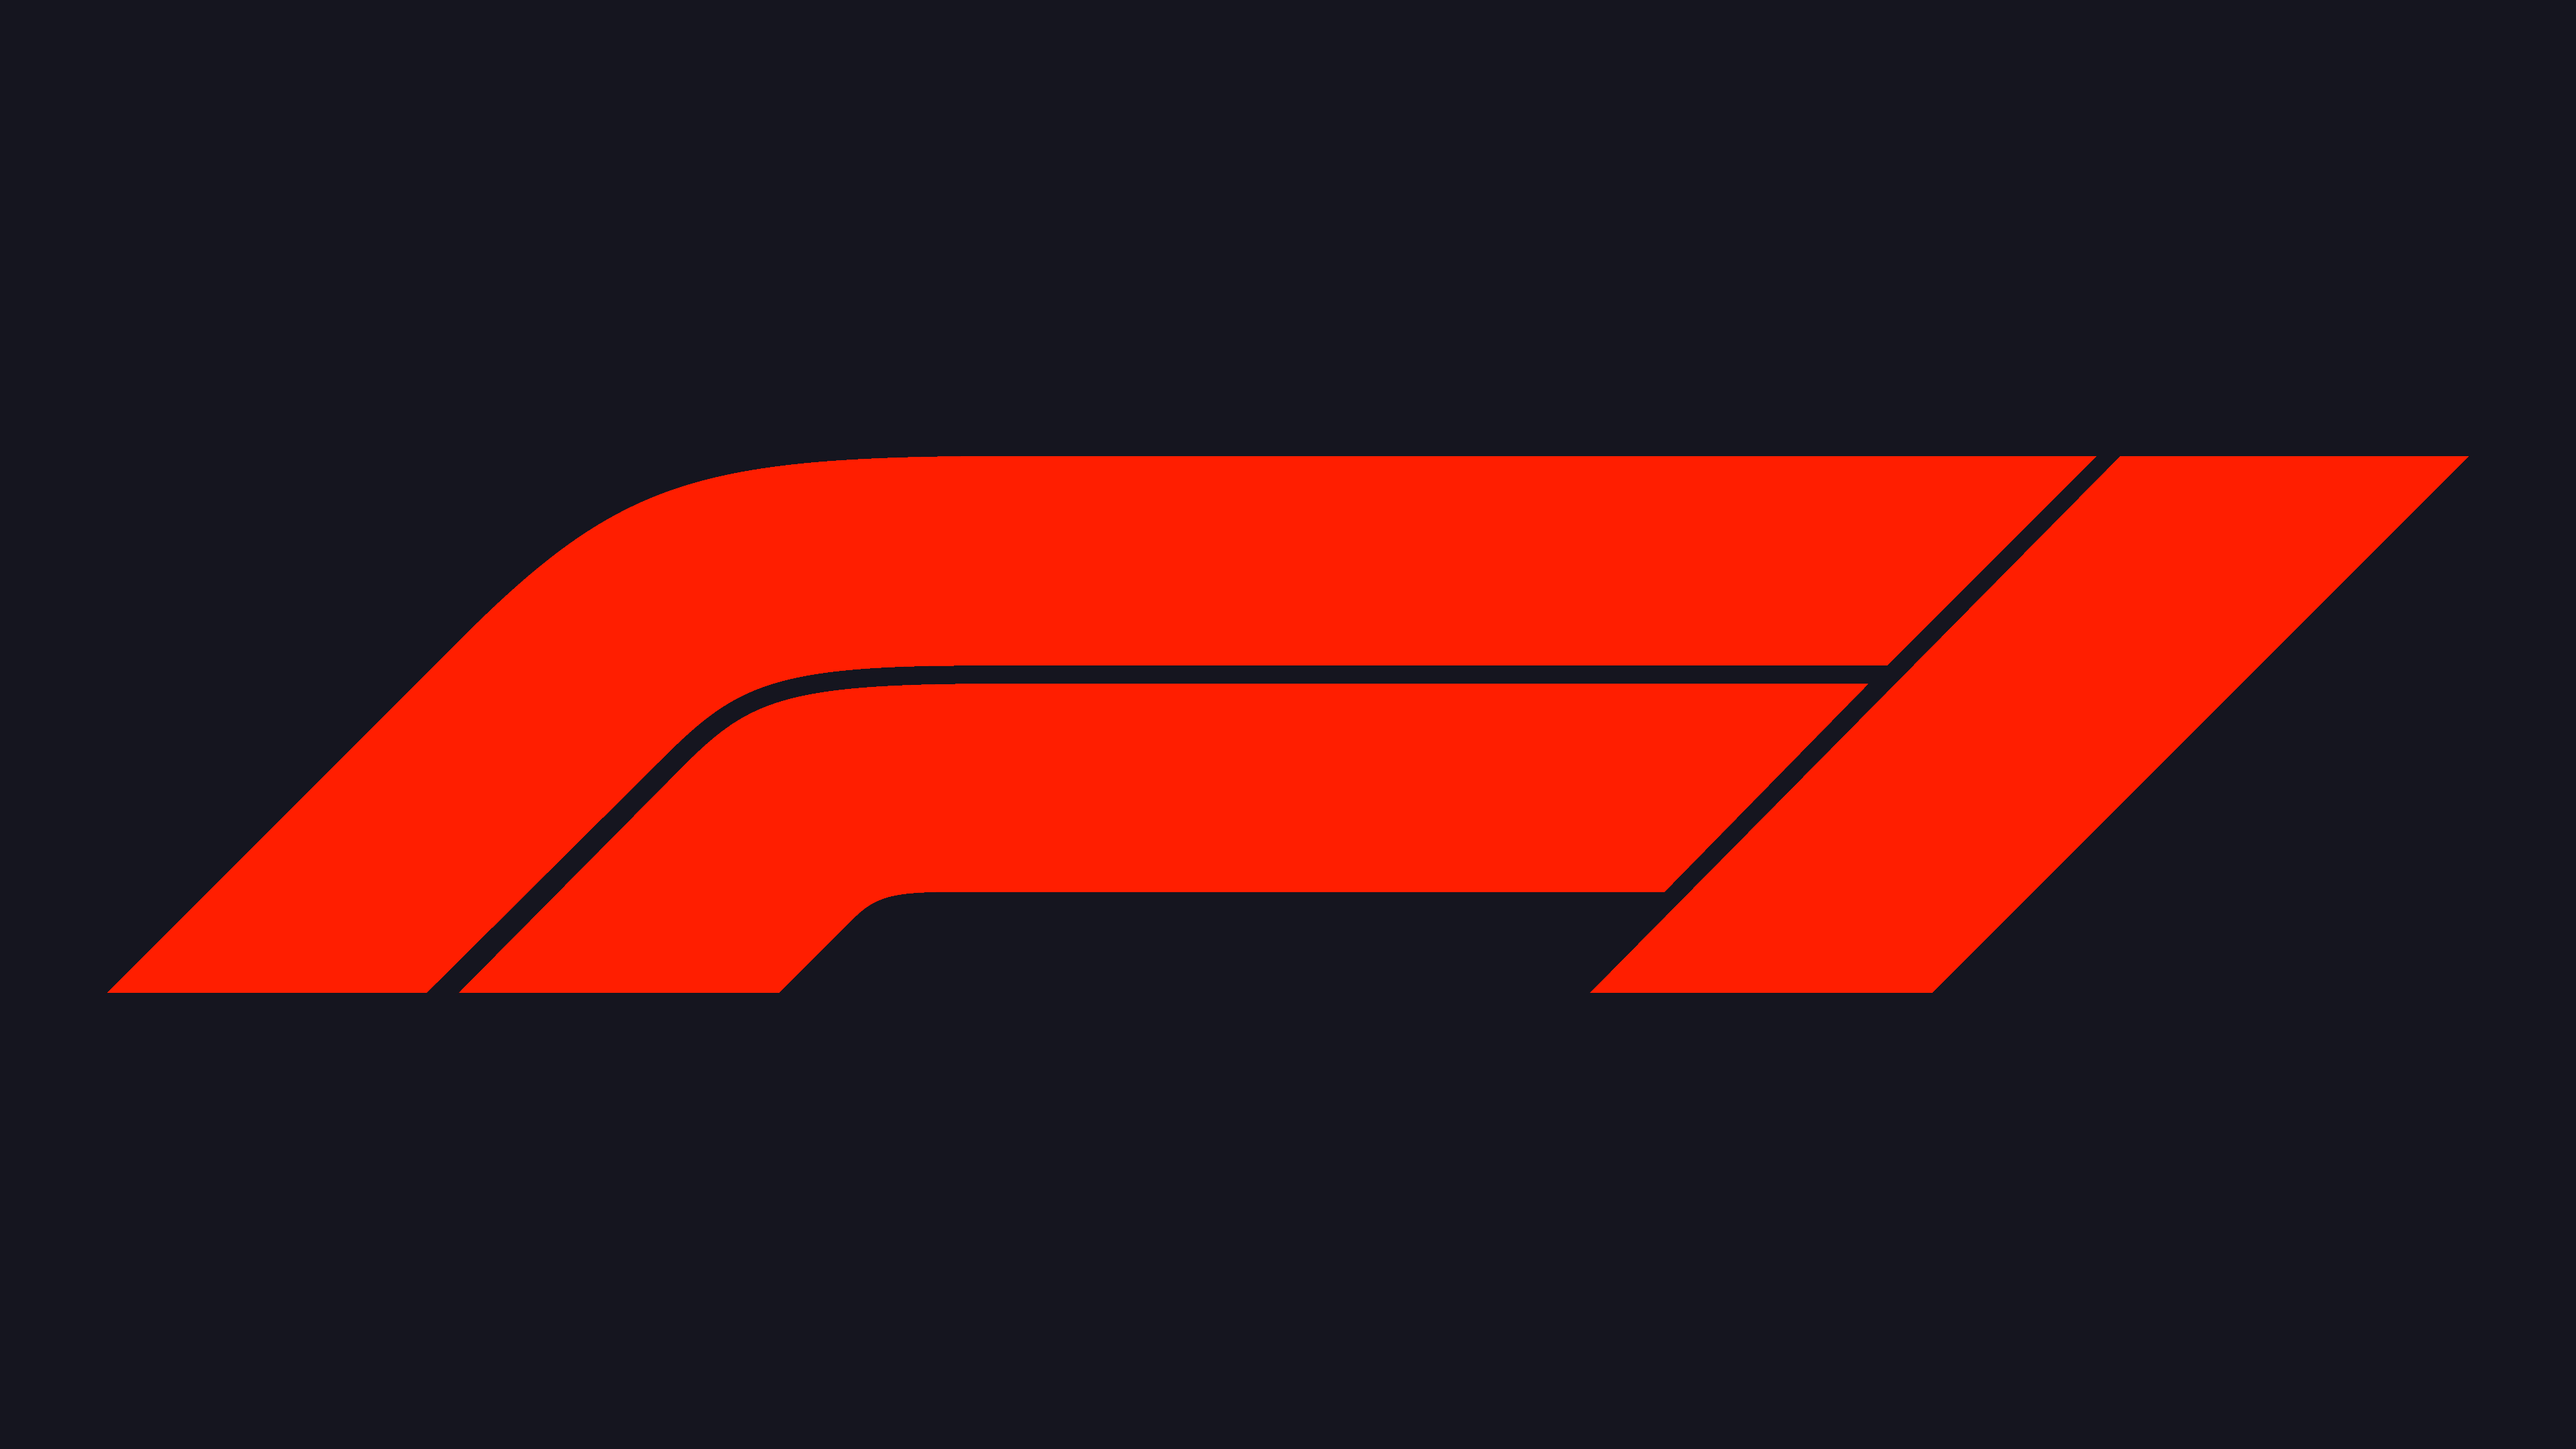 F1 Logo Wallpapers - Top Free F1 Logo Backgrounds ...